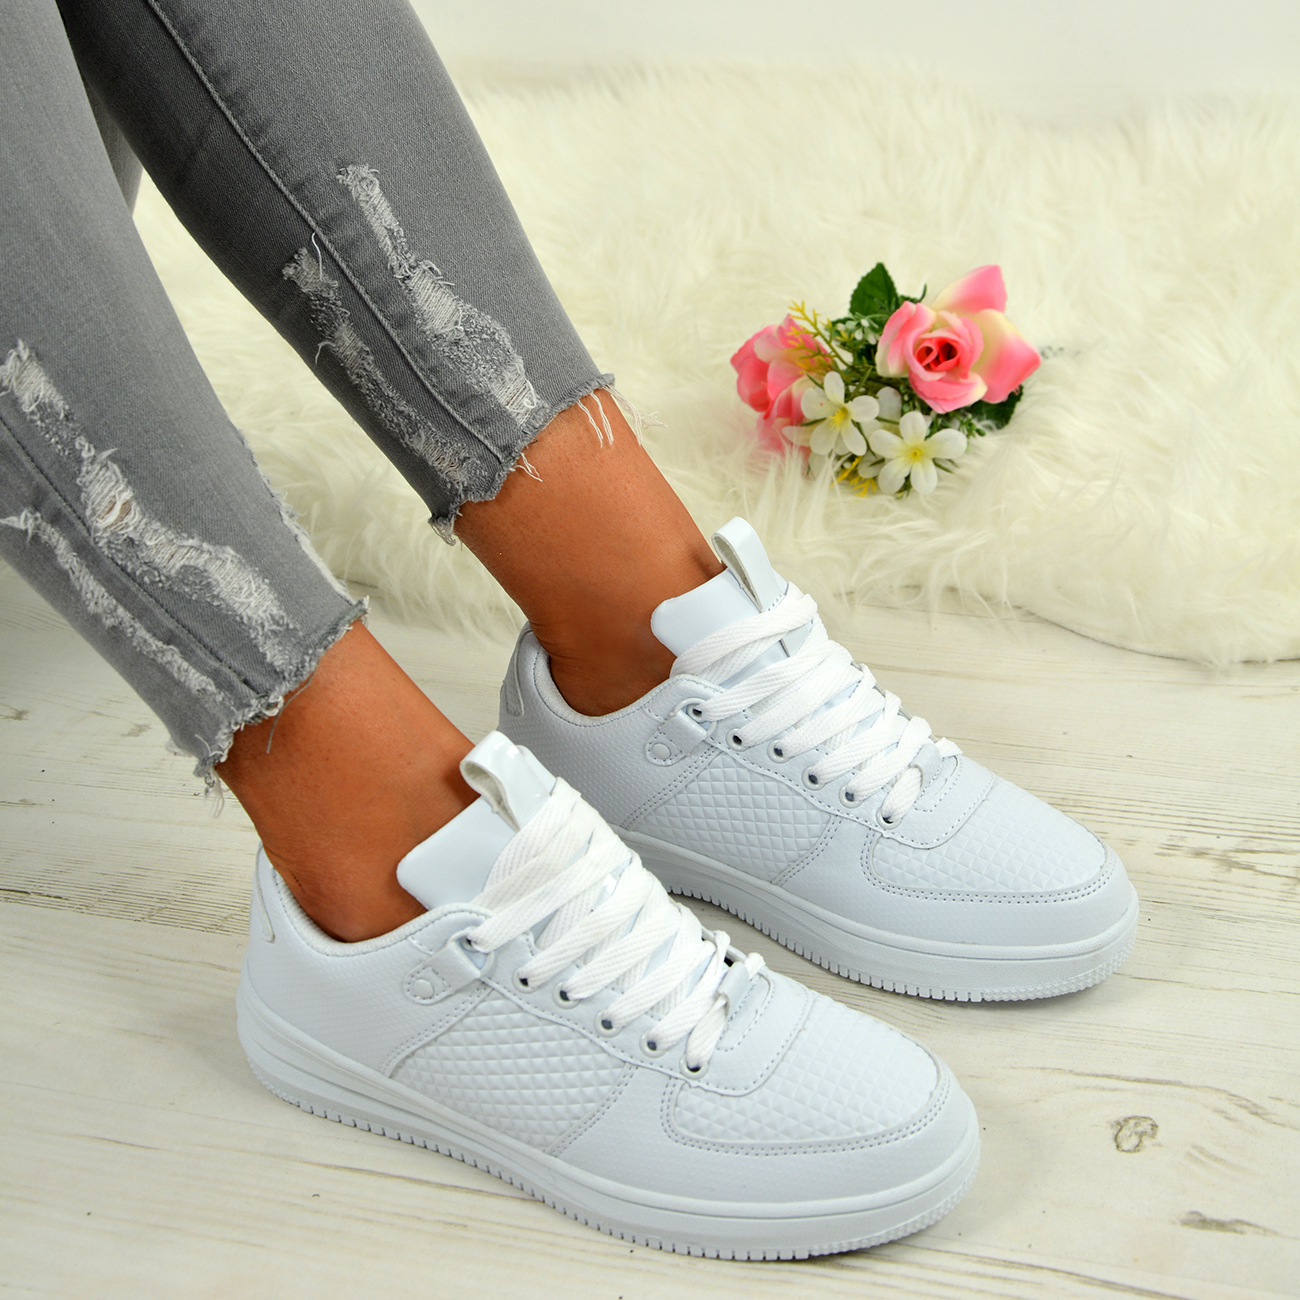 LADIES-WOMENS-TRAINERS-LACE-UP-SNEAKERS-CASUAL-PLIMSOLLS-SHOES-SIZES